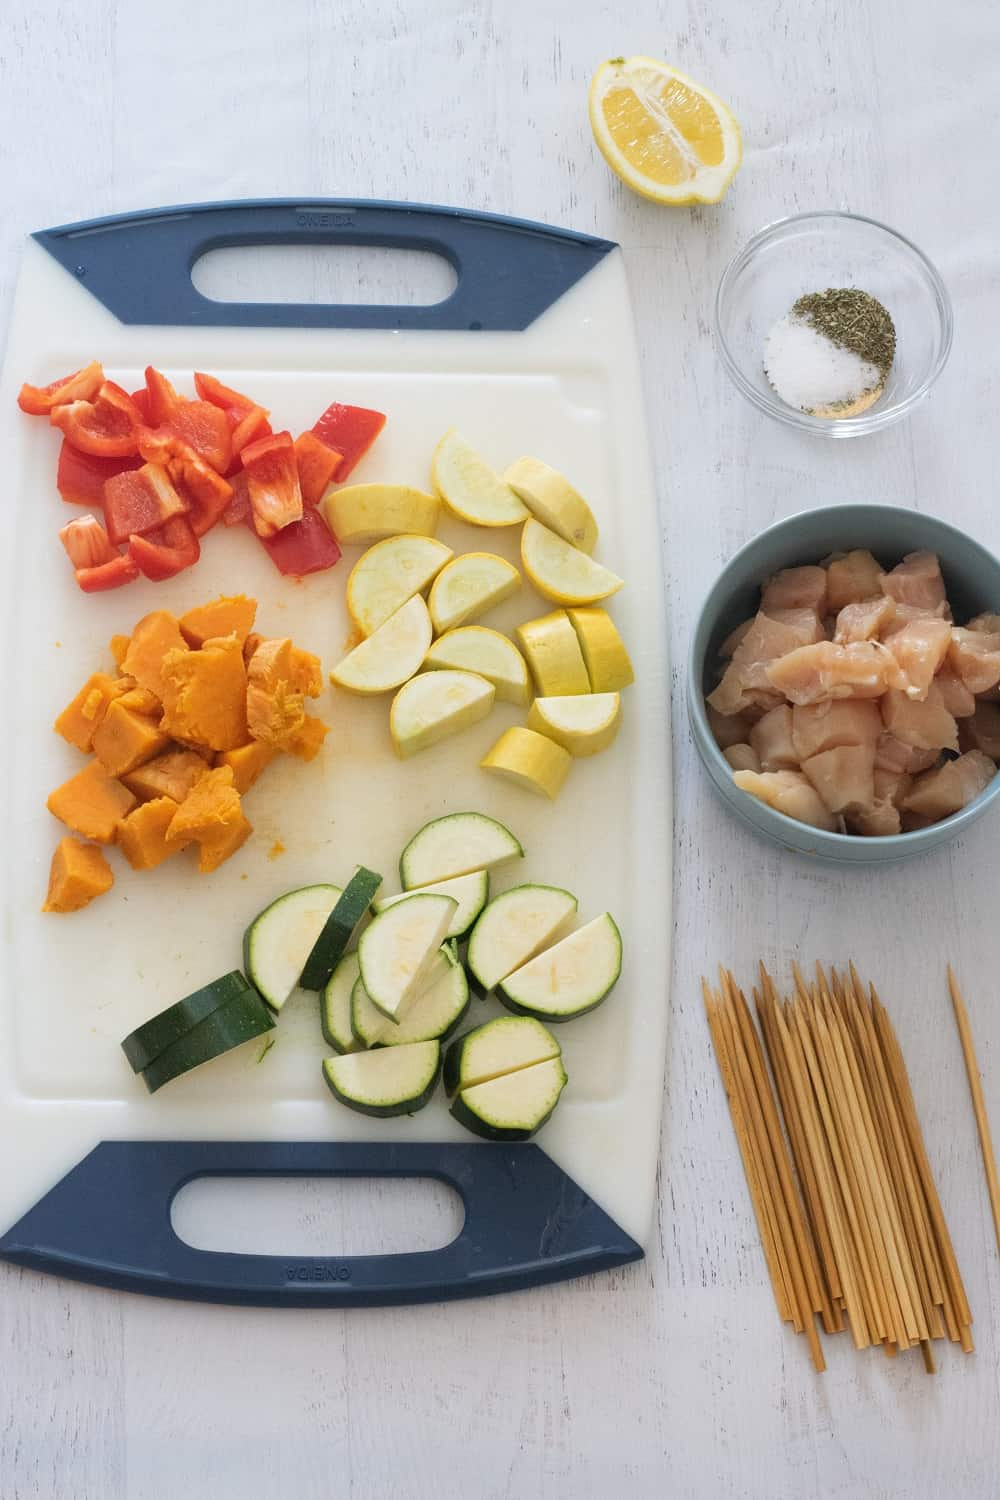 chopped vegetables on white cutting board next to blue bowl with raw chicken to make oven baked chicken kebabs